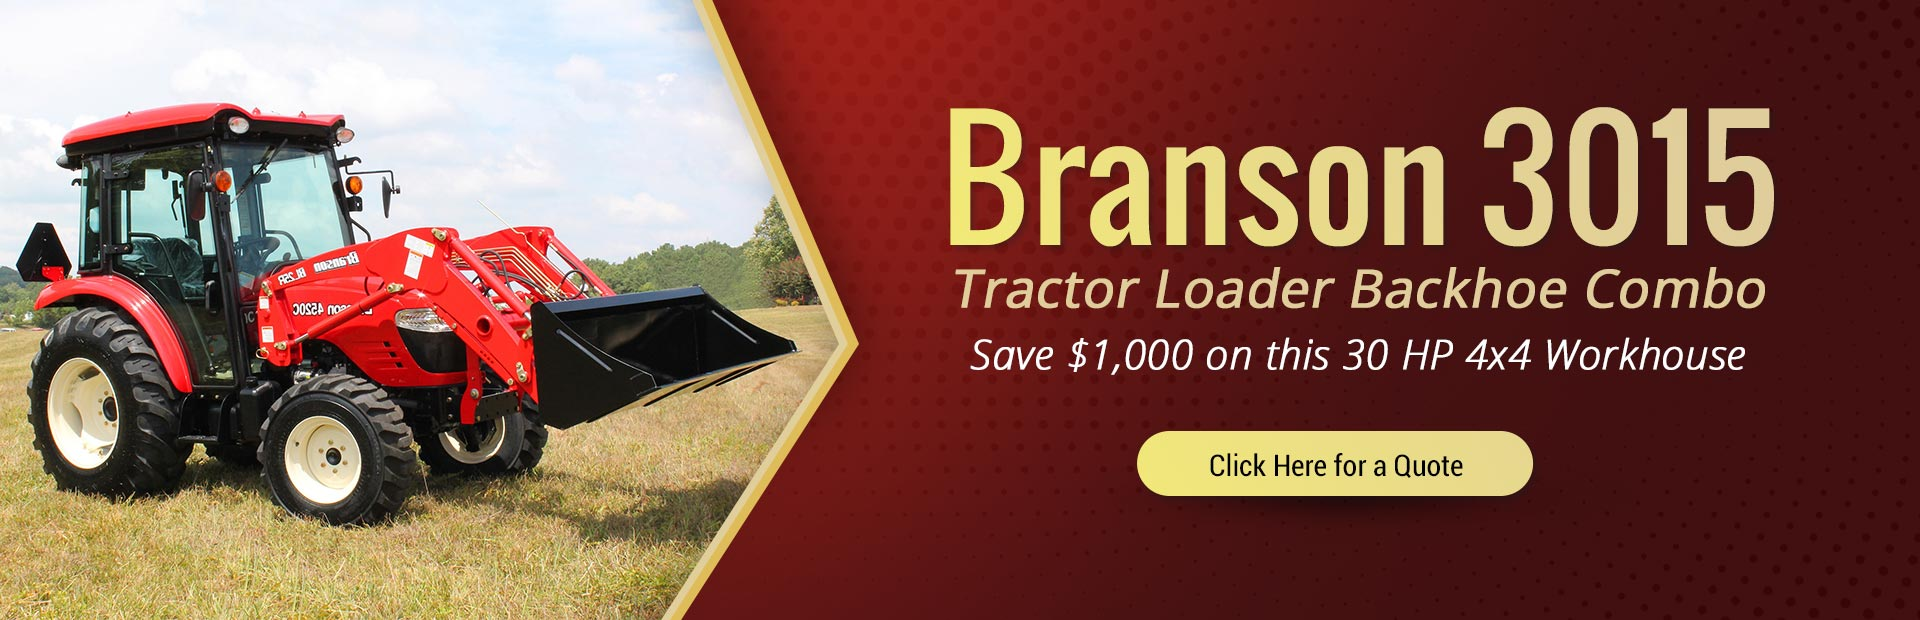 Deal of the month: Save $1,000 on a Branson 3015 Tractor Loader Backhoe Combo. Click here for detail